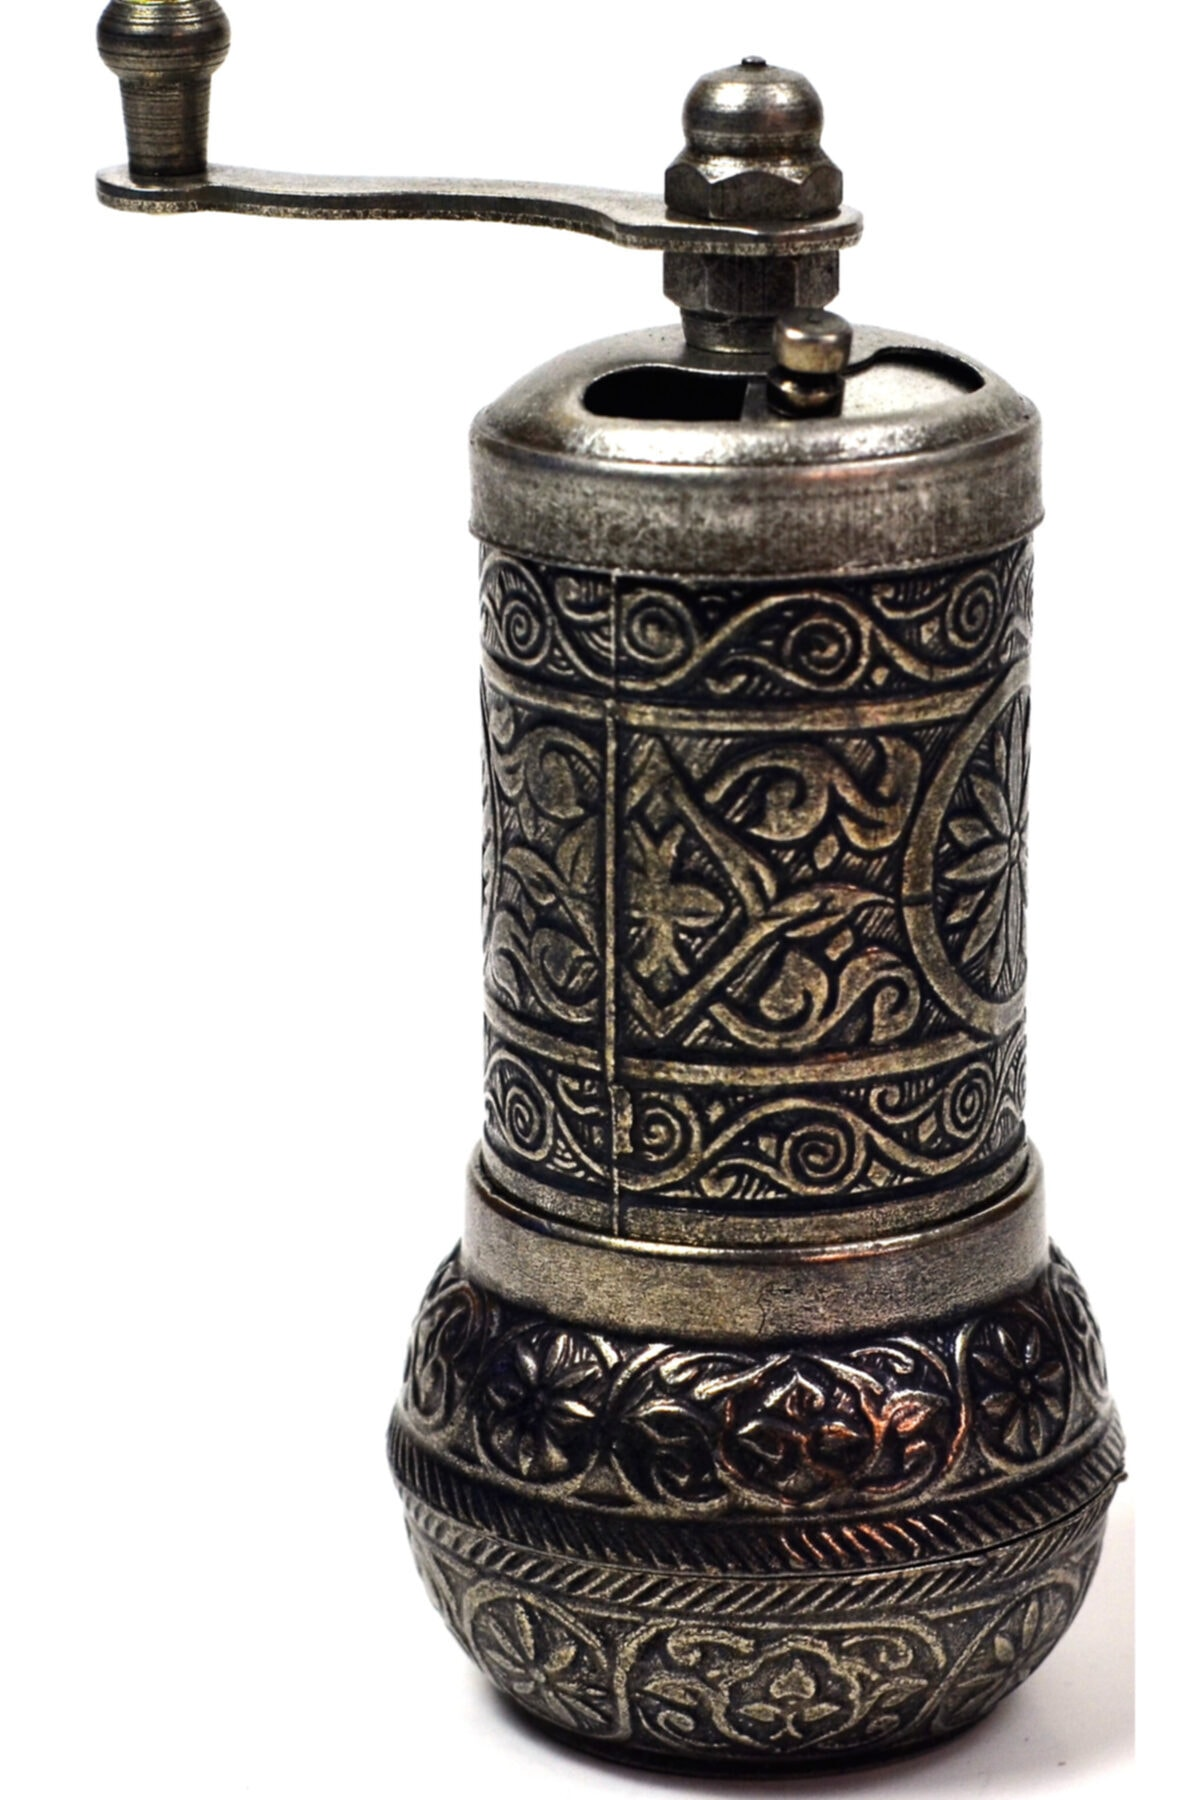 Turkish Pepper Or Coffee Hand Grinder Mill